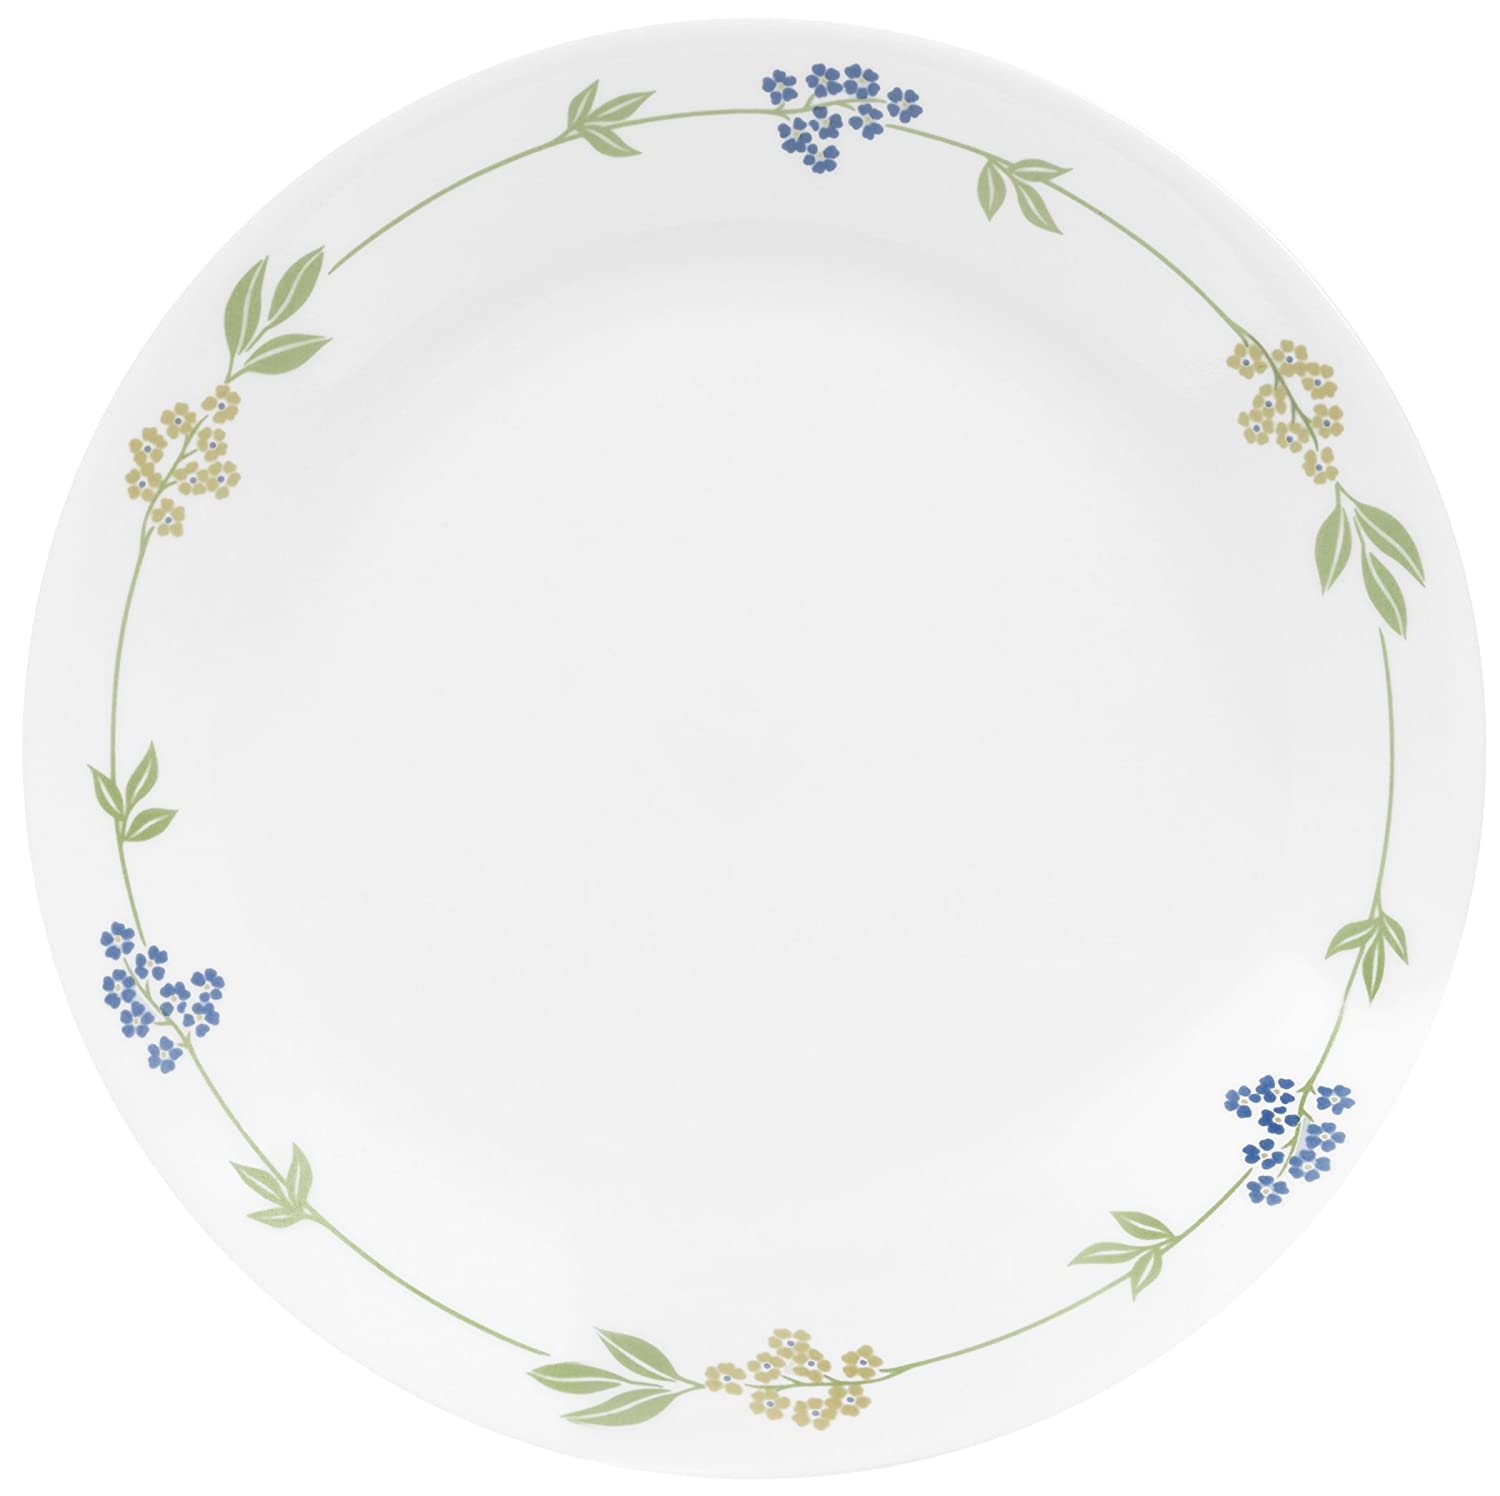 Amazon.com | Corelle Livingware 10-1/4-Inch Dinner Plate Secret Garden Dinner Plates  sc 1 st  Amazon.com & Amazon.com | Corelle Livingware 10-1/4-Inch Dinner Plate Secret ...